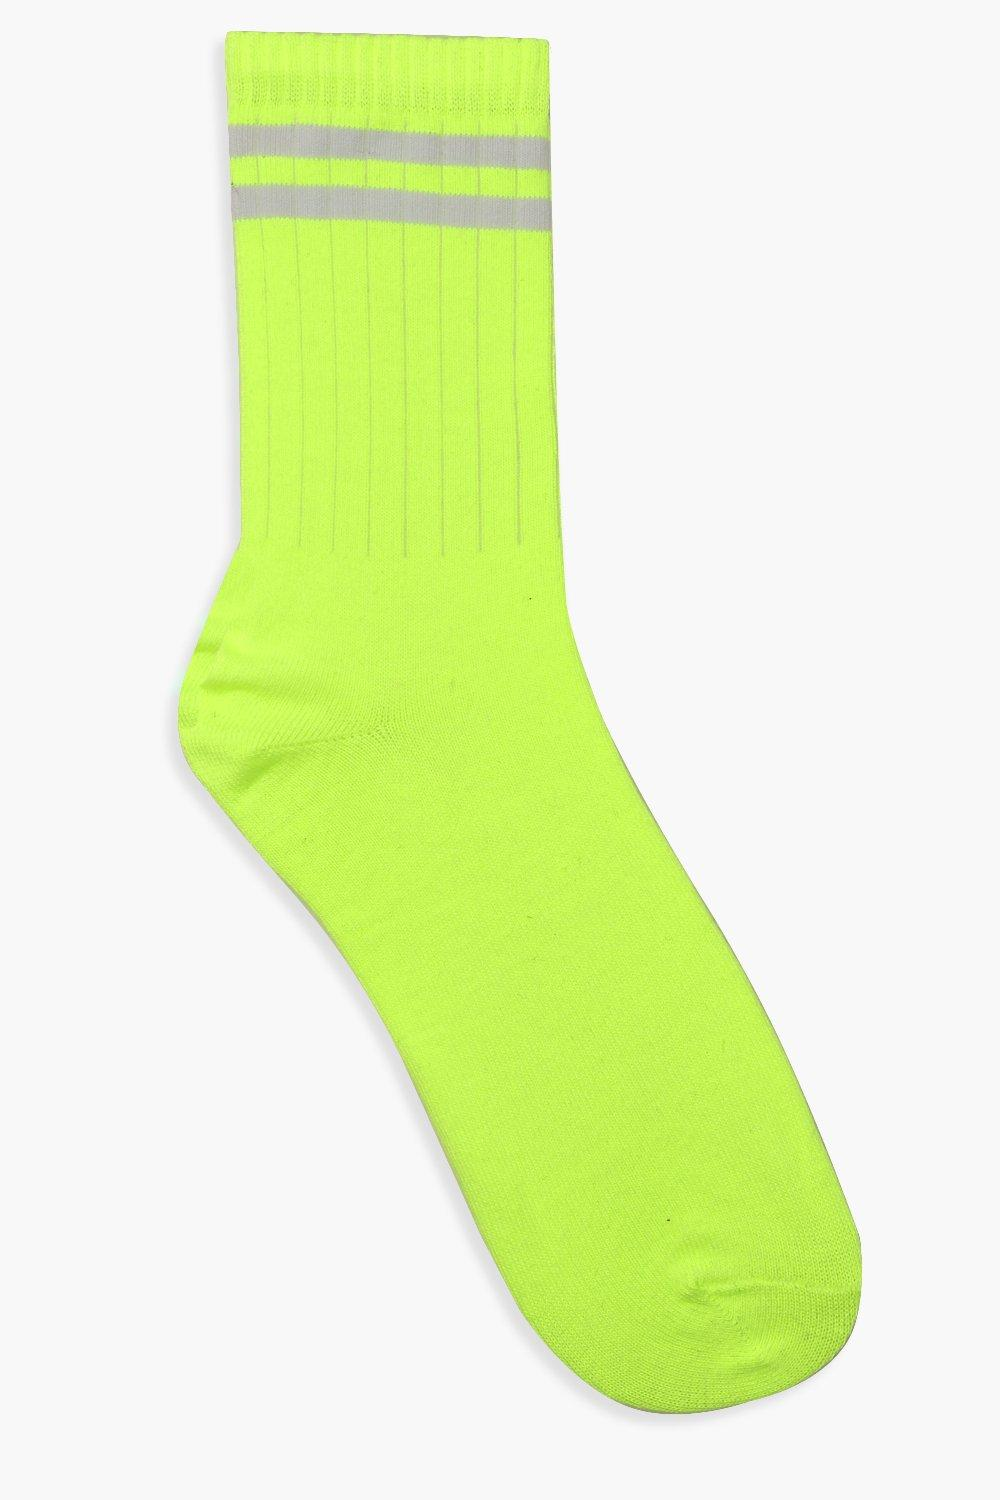 1980s Clothing, Fashion | 80s Style Clothes Womens Neon Lime Sports Stripe Socks - Green - One Size $3.00 AT vintagedancer.com